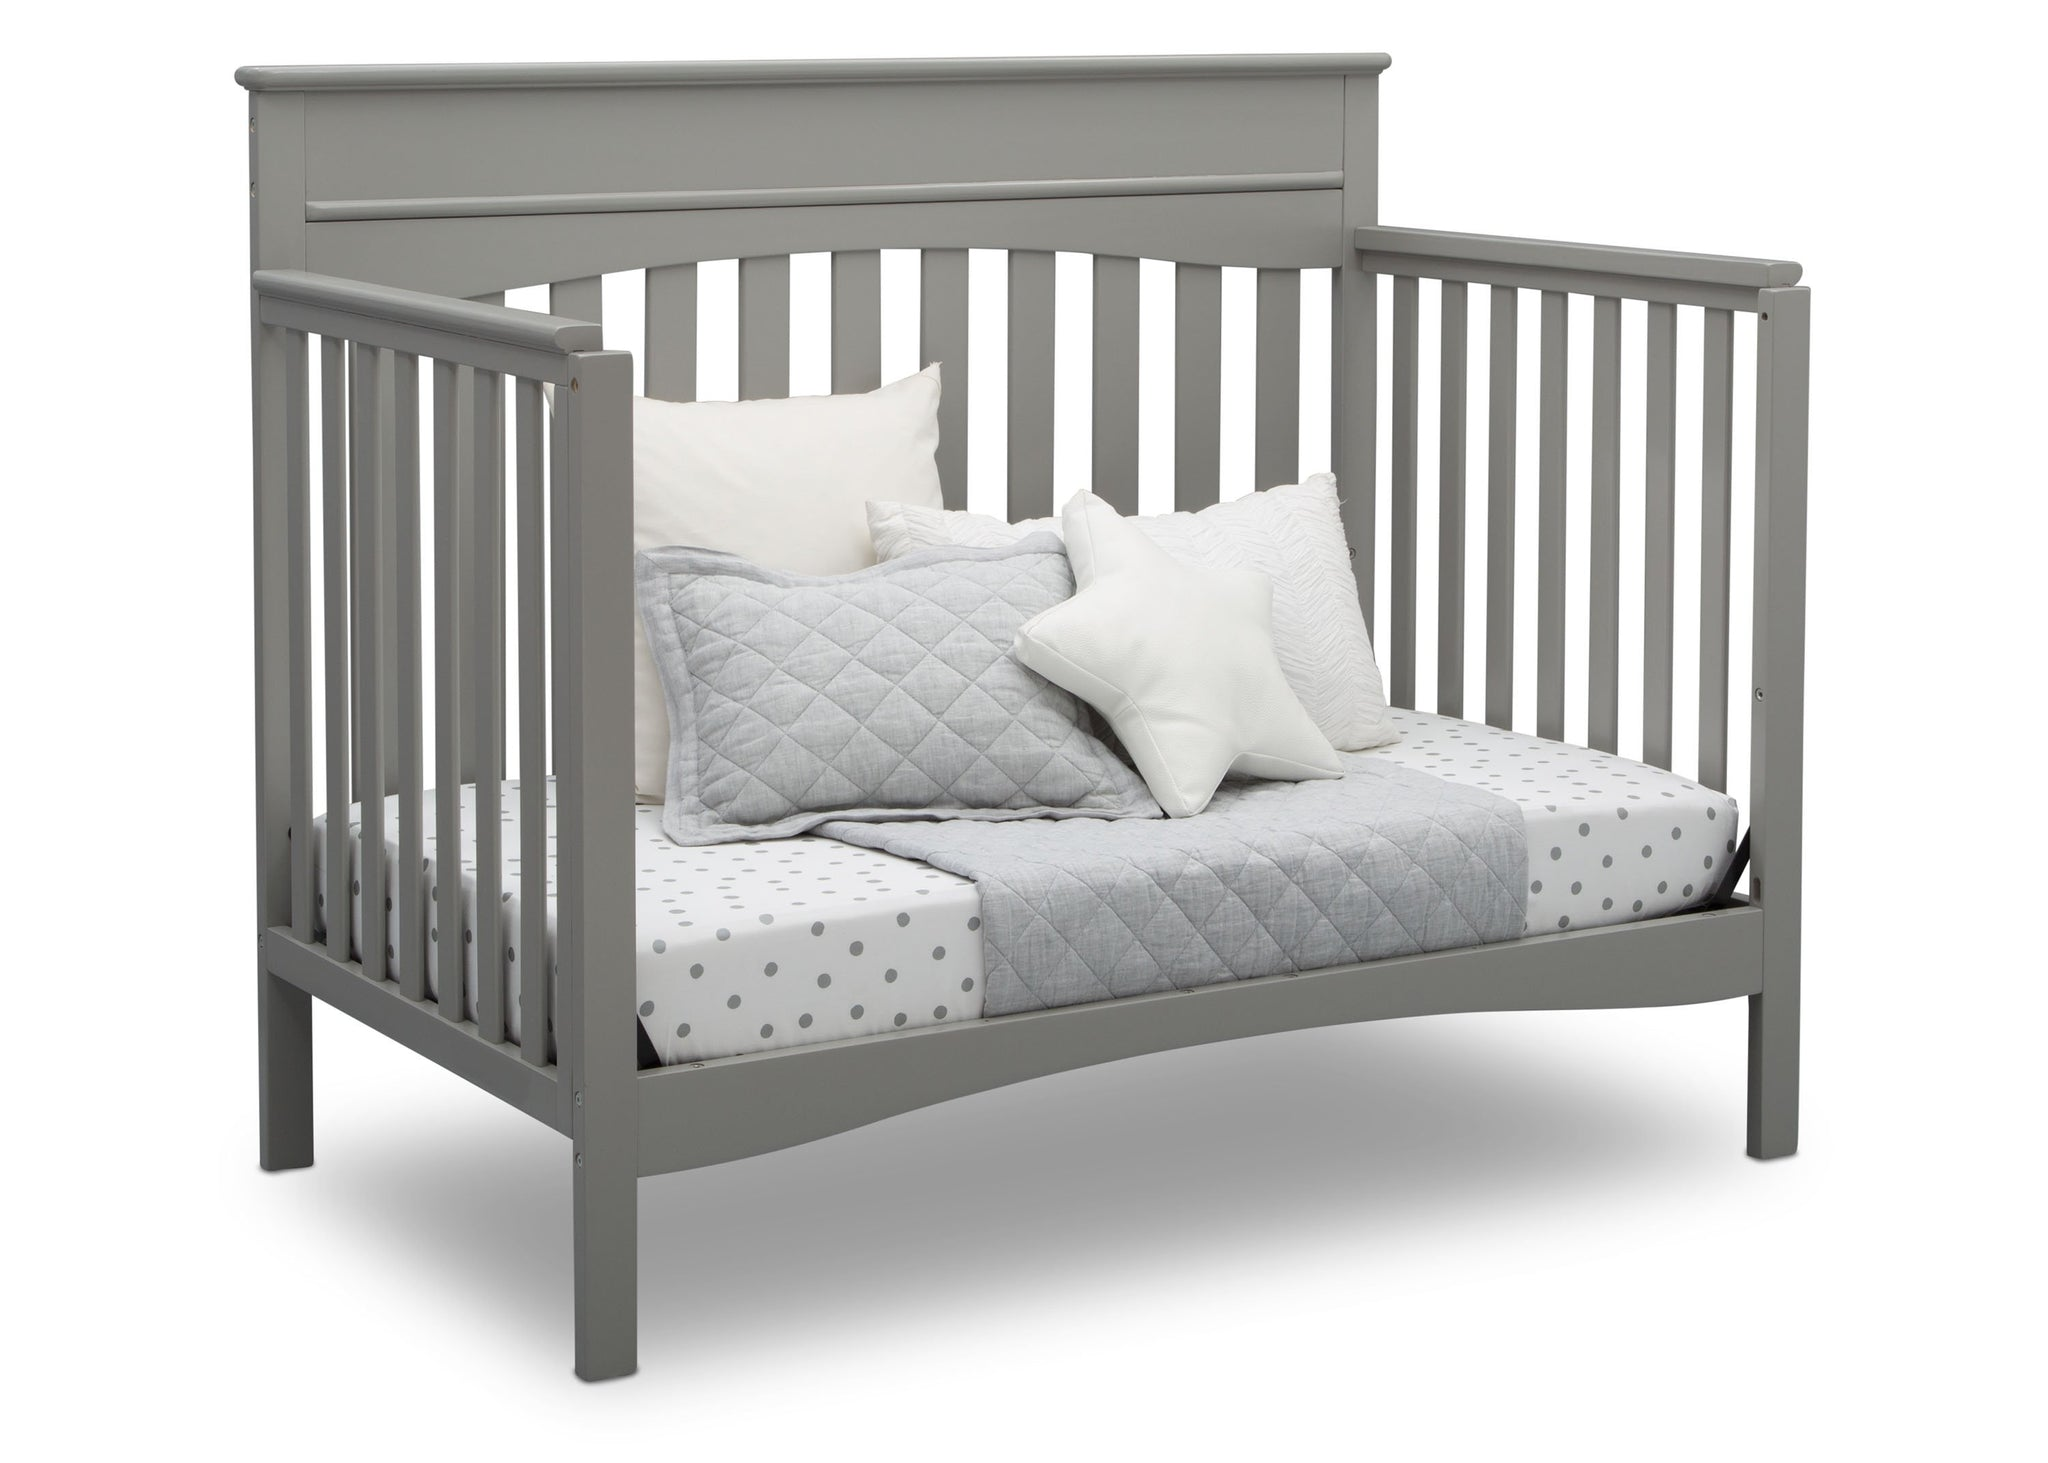 Delta Children Grey (026) Skylar 4-in-1 Convertible Crib (558150), Daybed, b3b